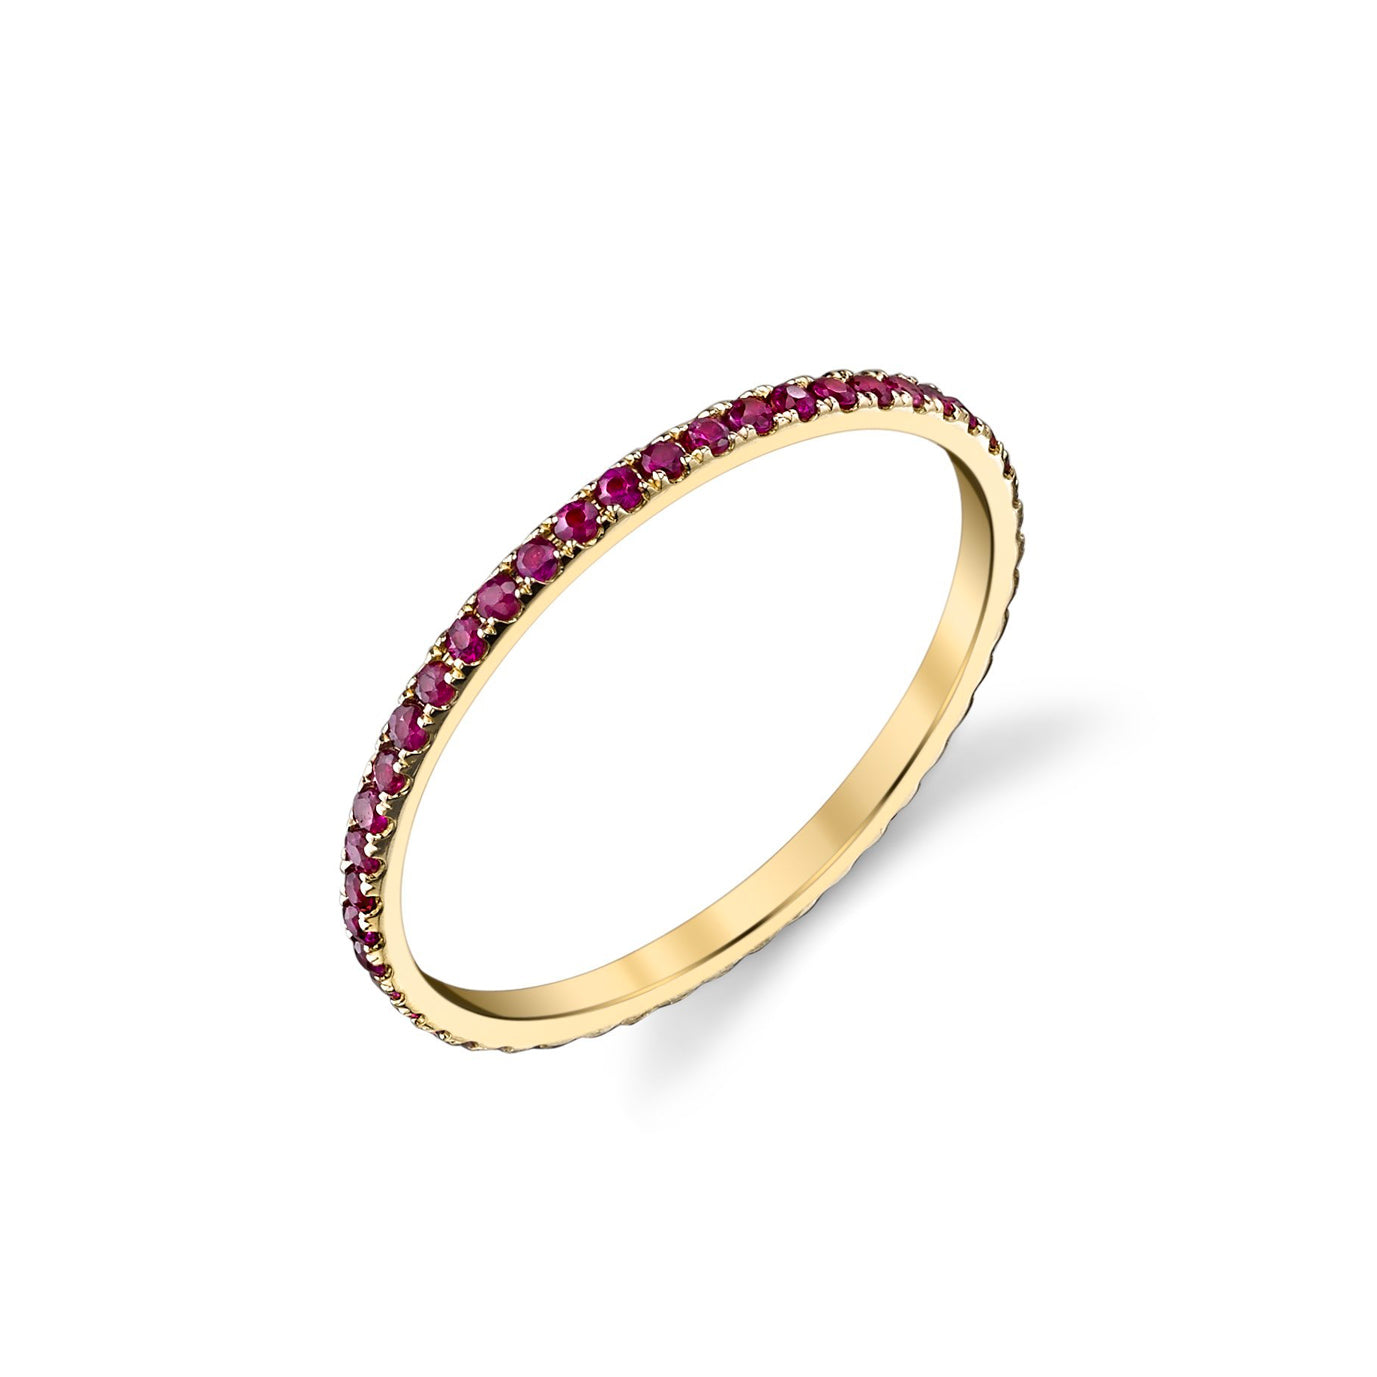 Axis Ring With Rubies - Gabriela Artigas